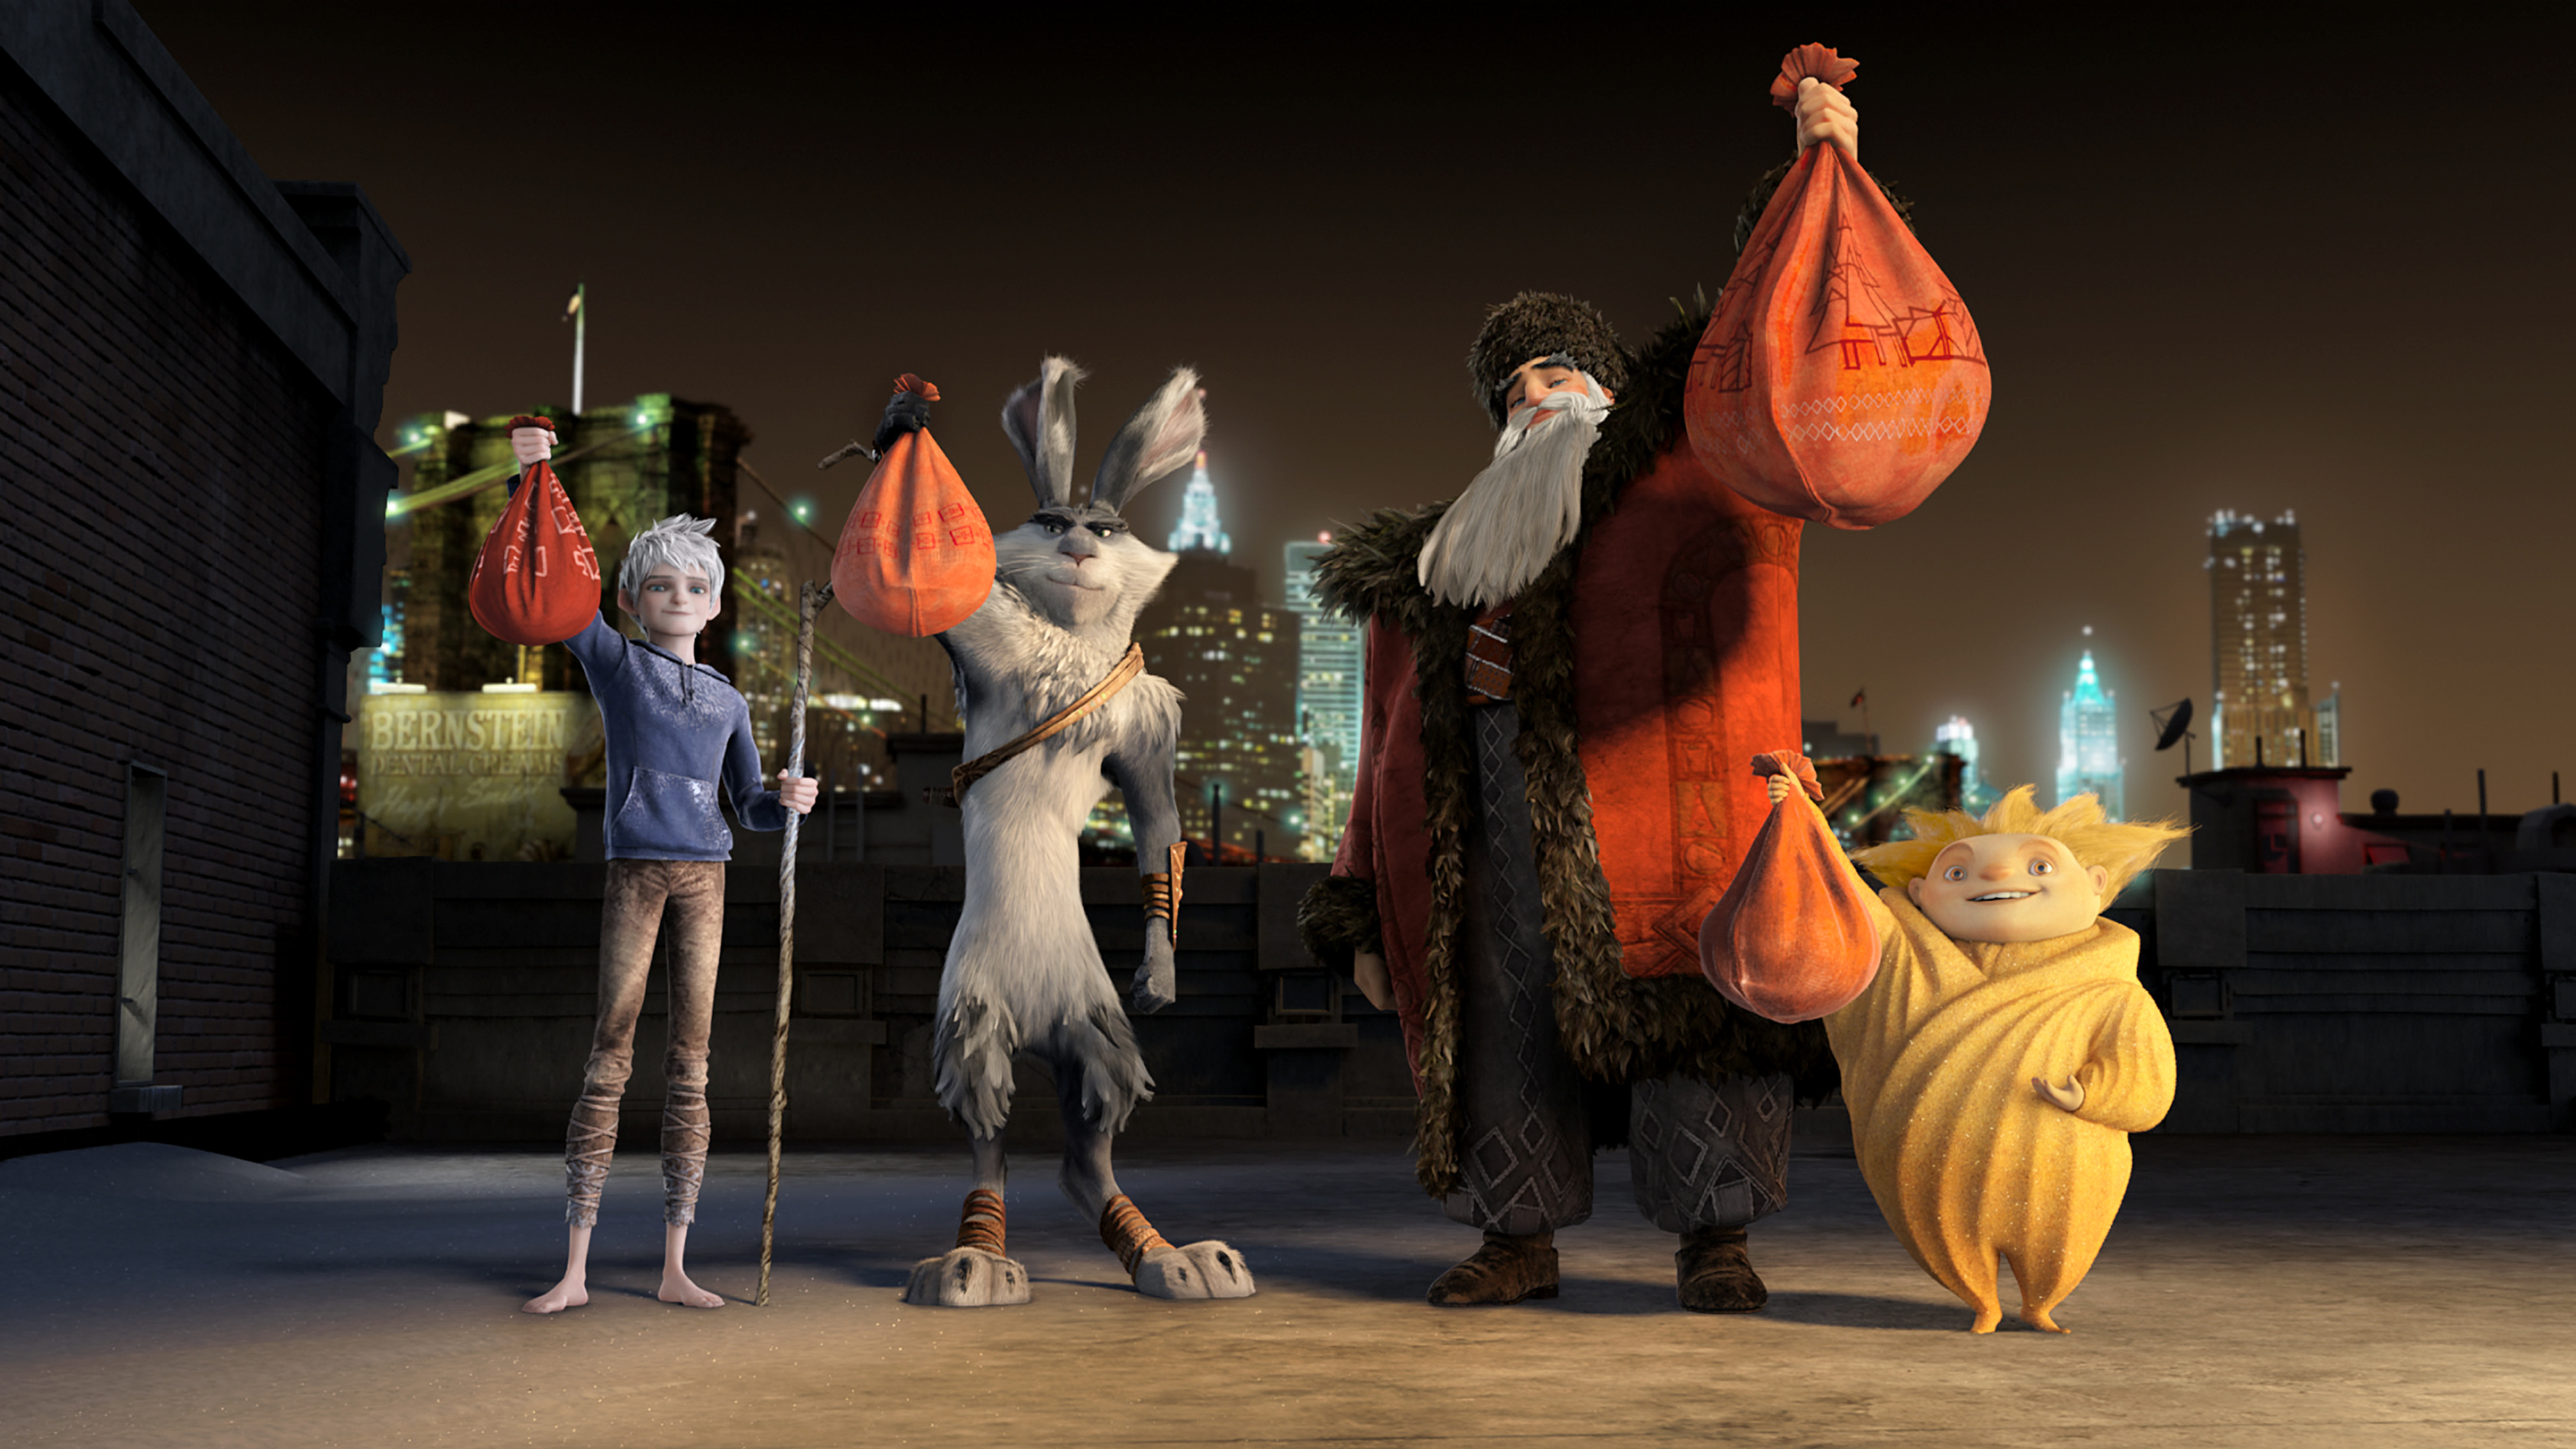 Rise of the guardians wallpapers pictures images - Pics of rise of the guardians ...